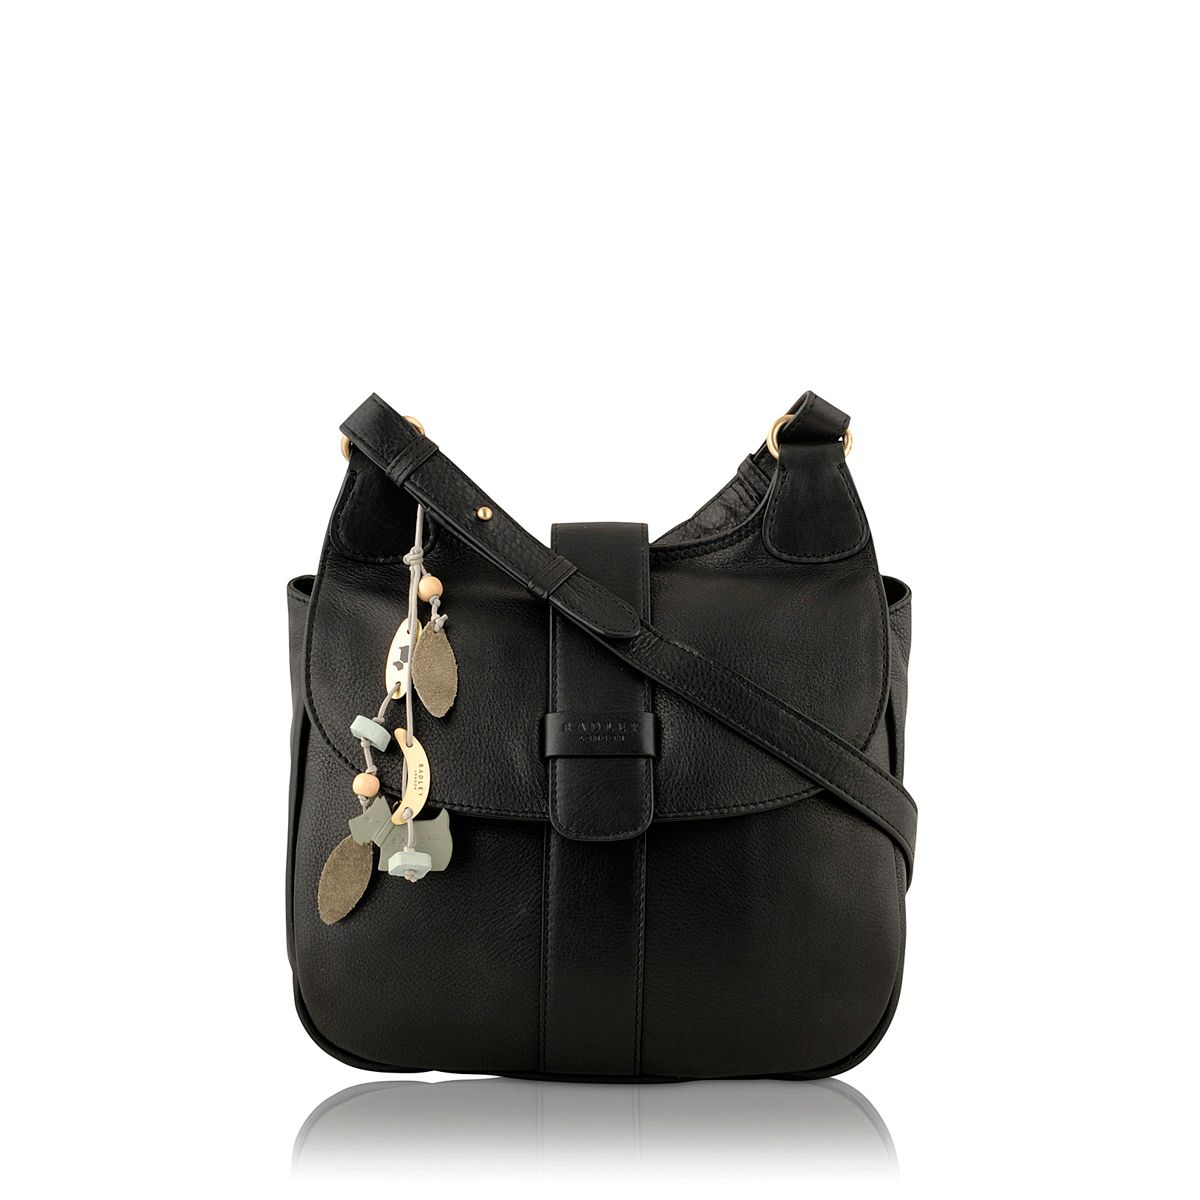 Danby black leather flapover cross body bag